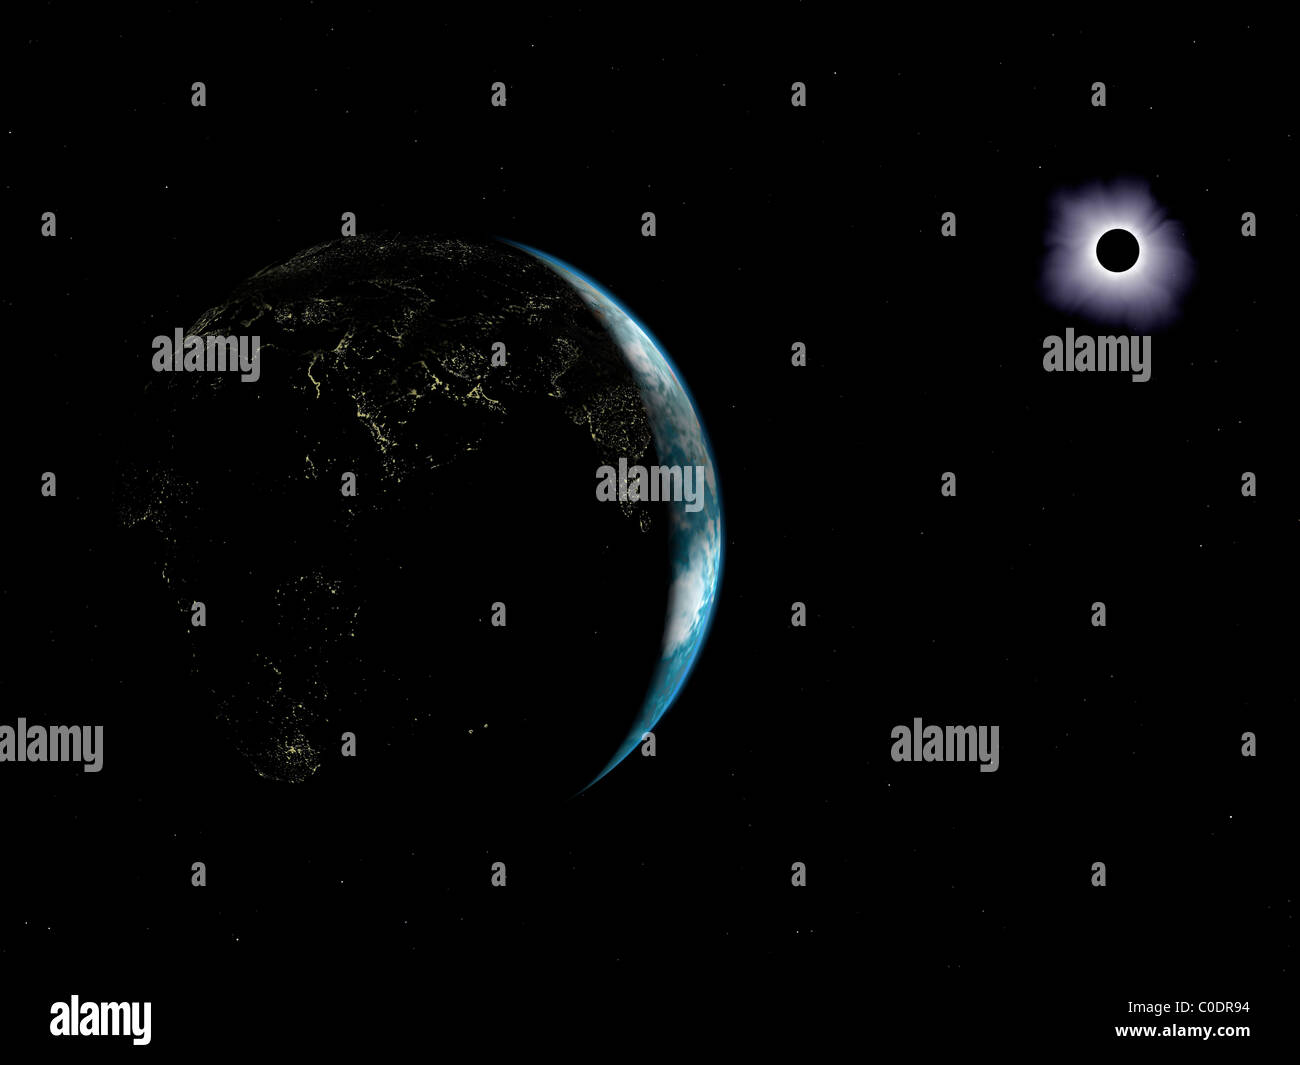 Illustration of the city lights on a dark Earth during a solar eclipse. - Stock Image